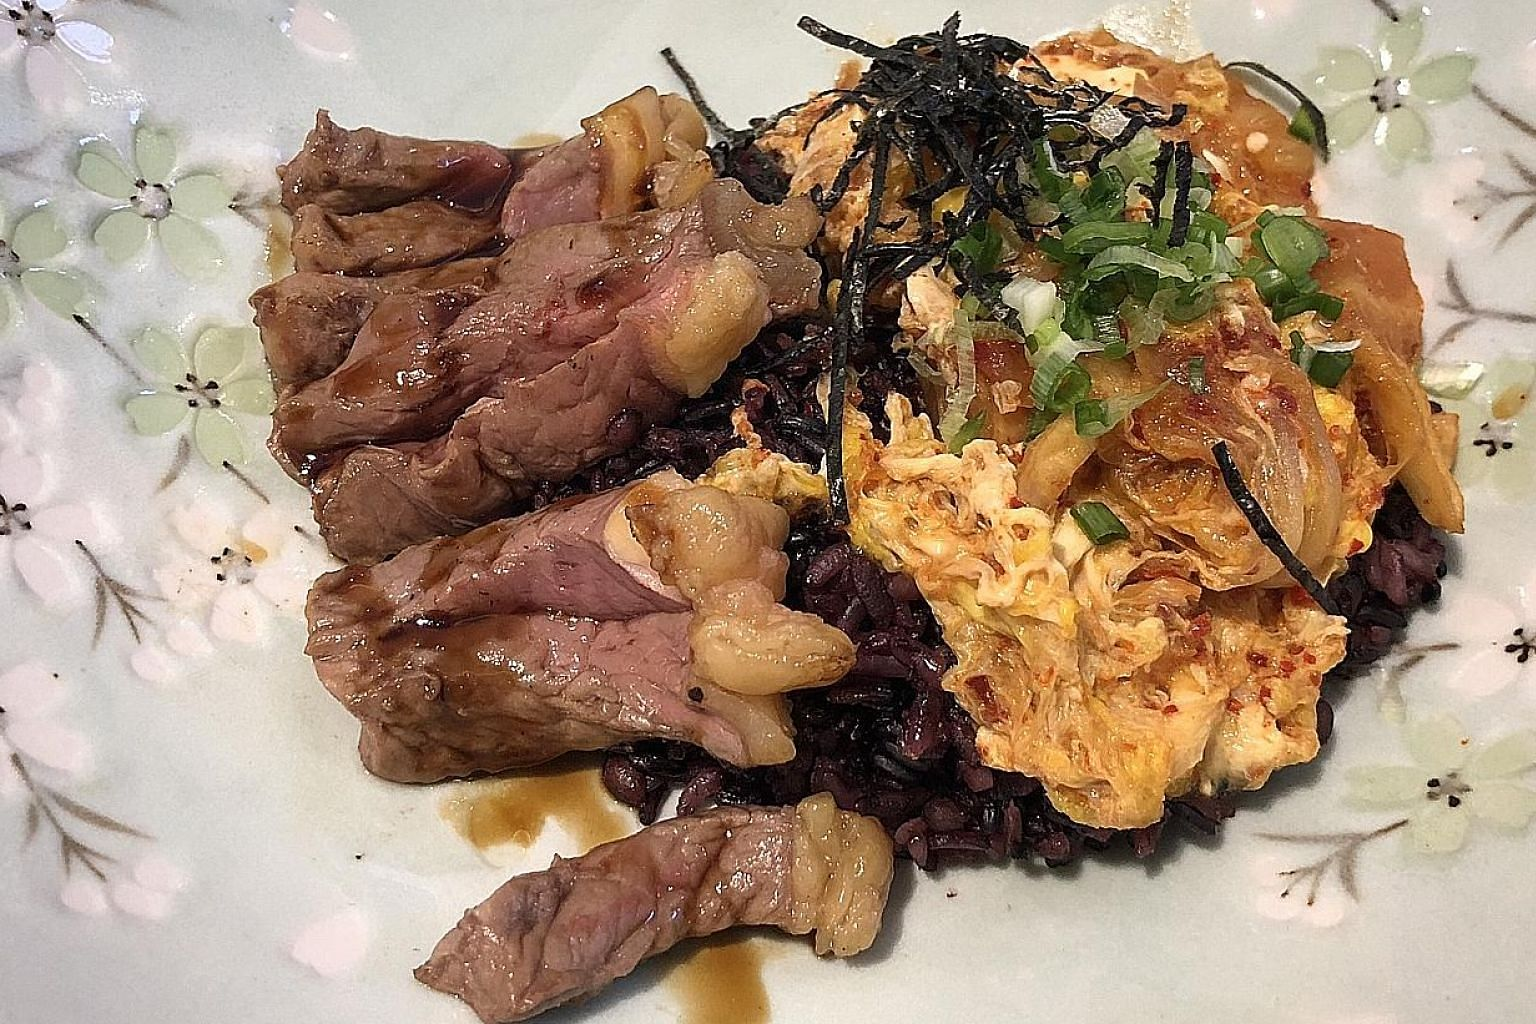 The Yes Sir! Yes Sir! bowl ($12) comes with sirloin steak, a purple multi-grain rice called japgokbap, kimchi omelette and a drizzle of teriyaki sauce.